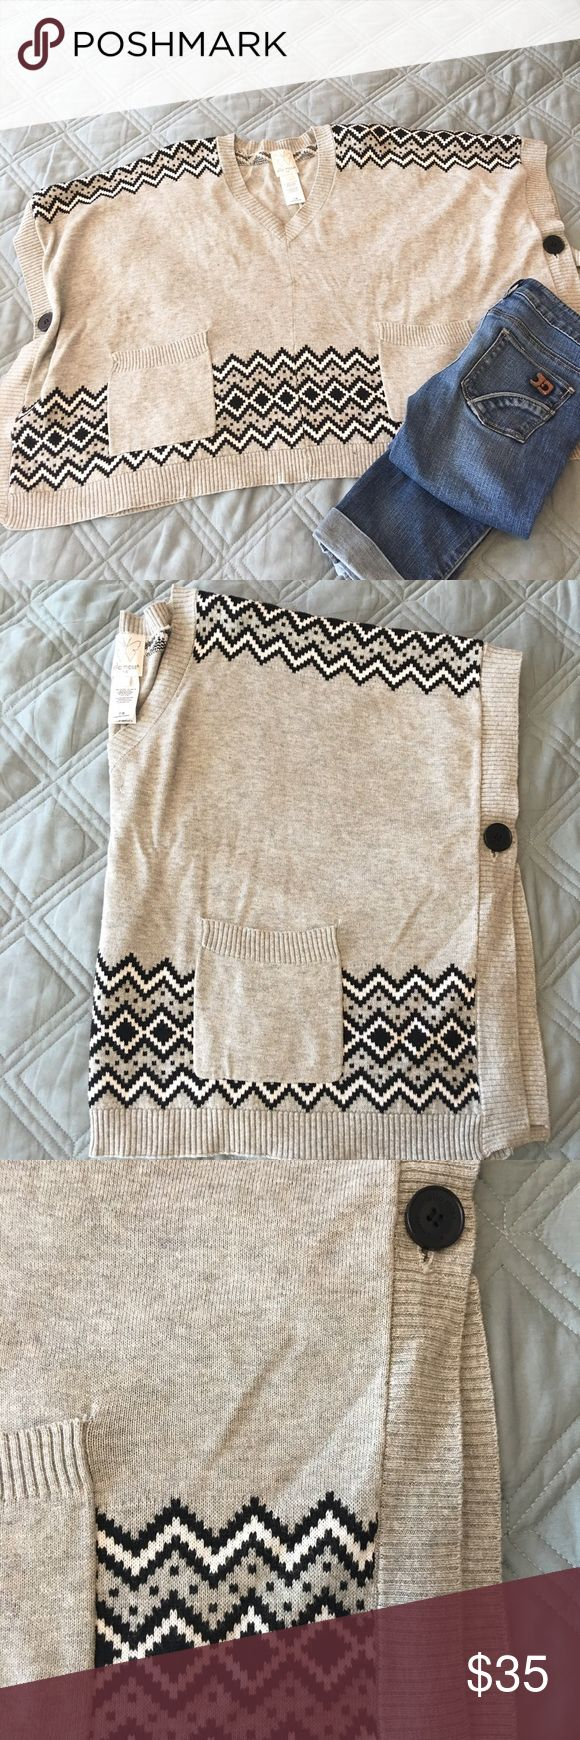 NWOT Ella Moss sweater cape Precious heather gray cape with black & white fair isle detail at bottom. Two button closures on the sides. Two front pockets. V-neck. Viscose/cotton blend. Machine wash cold. Smoke-free pet-friendly home. No trades, holds, or modeling. Ella Moss Jackets & Coats Capes